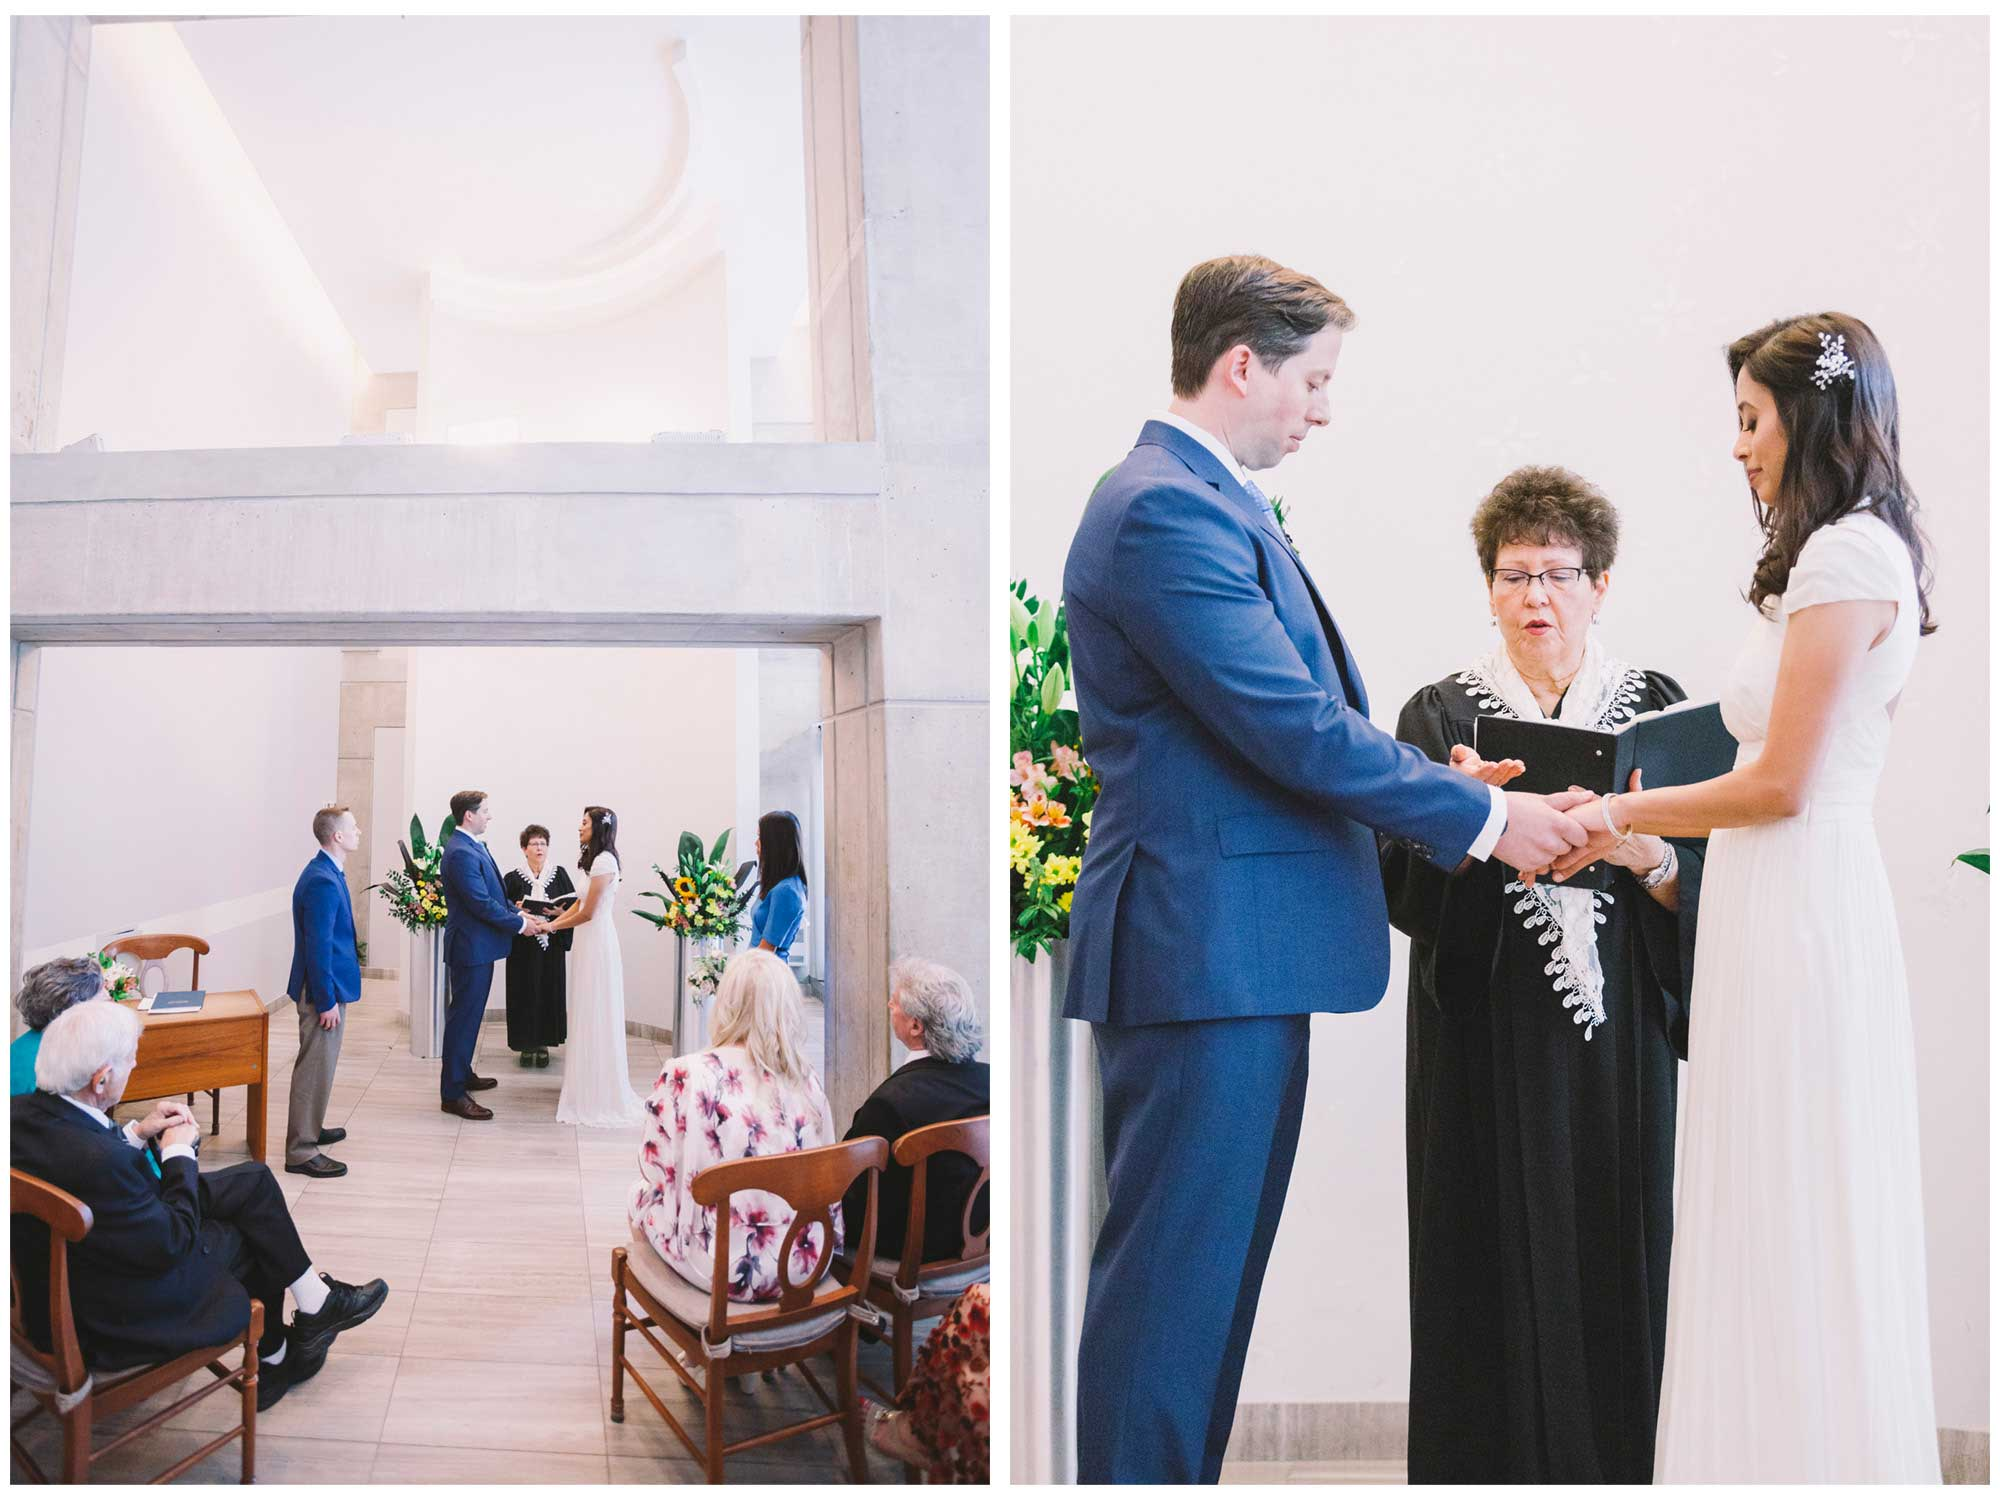 Ceremony at Toronto City Hall Wedding